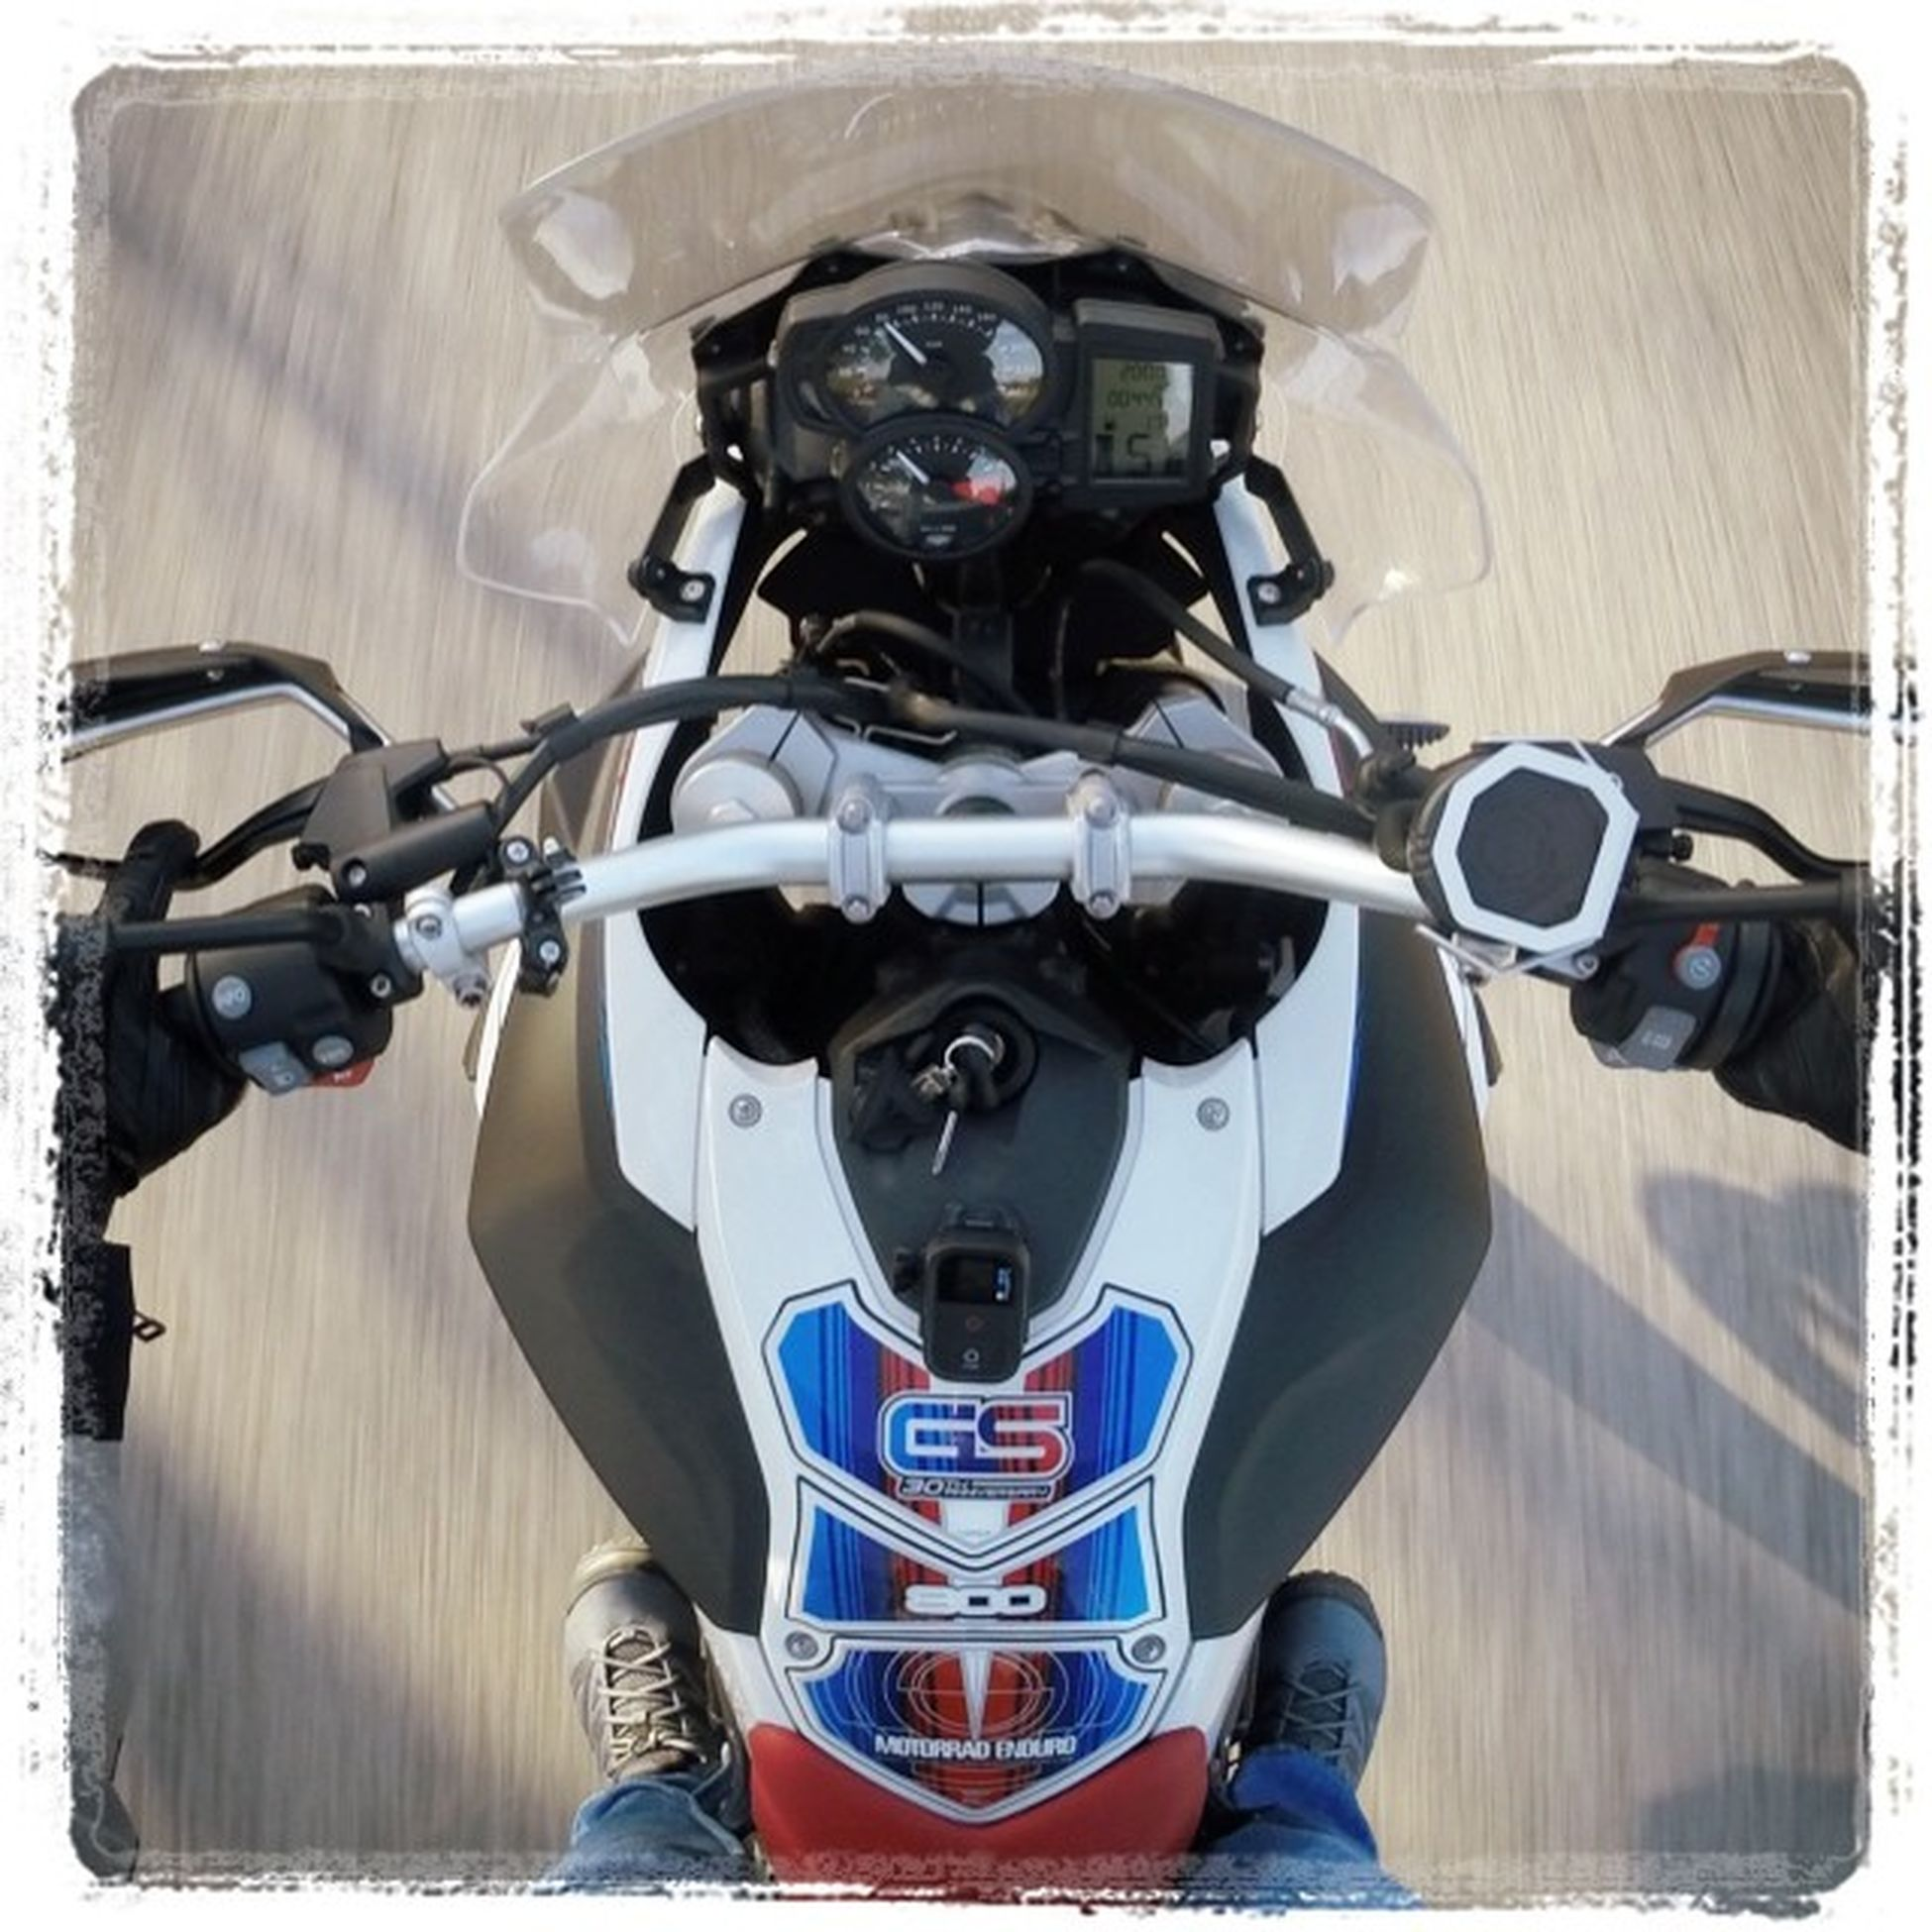 F800GS Gs Gs800 Goprooftheday Goproportugal Goprobmwmotorrad Gopromotorrad Goprof800gs Goprohero Goprohero3 Bmwf800GS Bmwgs BMWMotorrad Bmwmotorradpt Bike Onroad